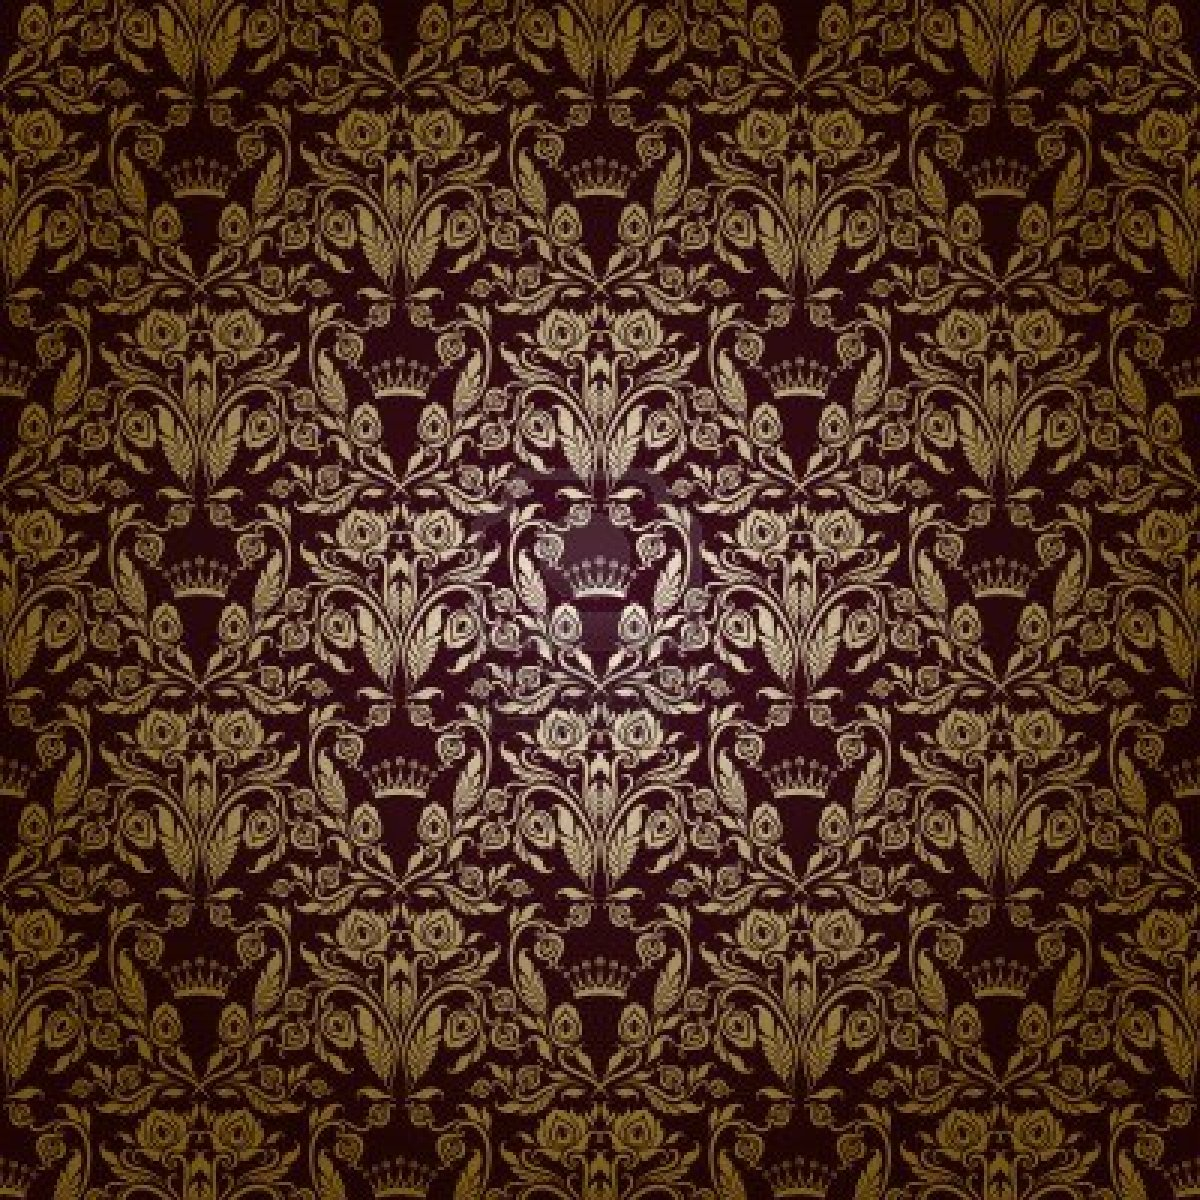 15890007 Damask Seamless Floral Pattern Royal Wallpaper Flowers On A Dark Background